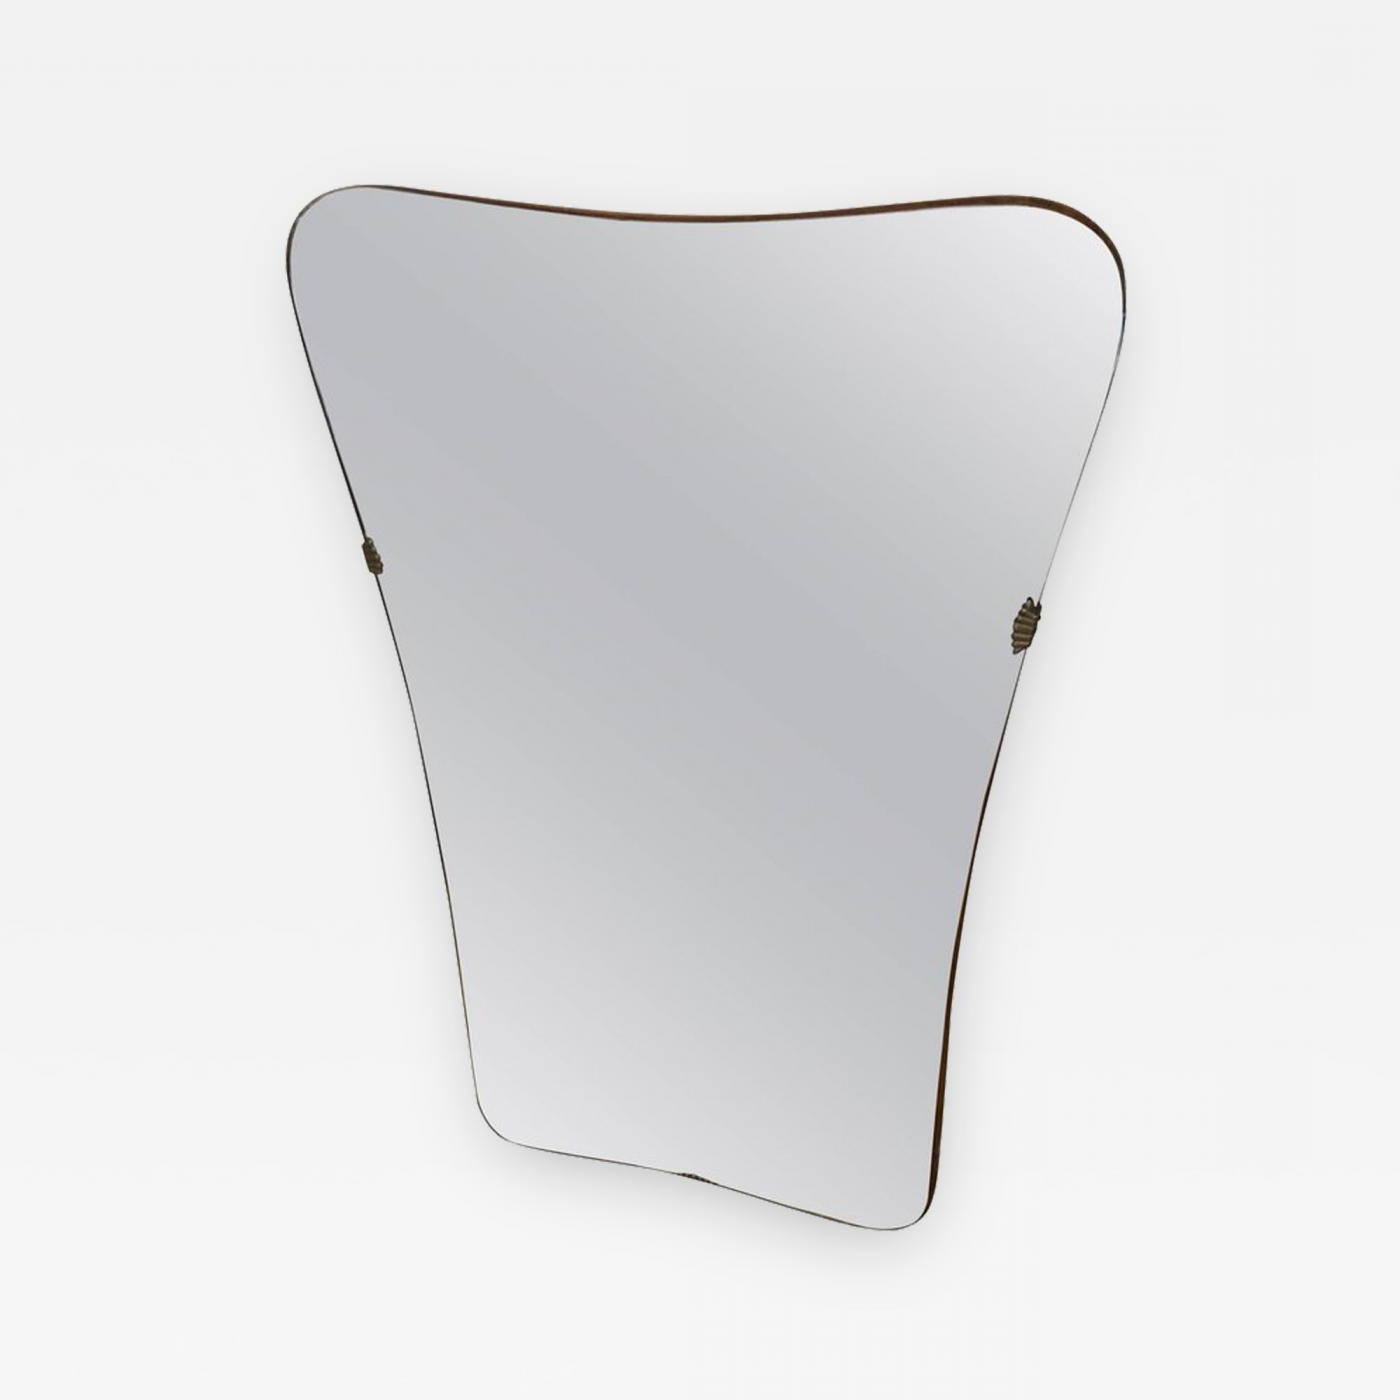 Favorite Gio Ponti – Italian Mid Century Modern Wall Mirror In The Style Of Gio Ponti Inside Mid Century Modern Wall Mirrors (View 4 of 20)